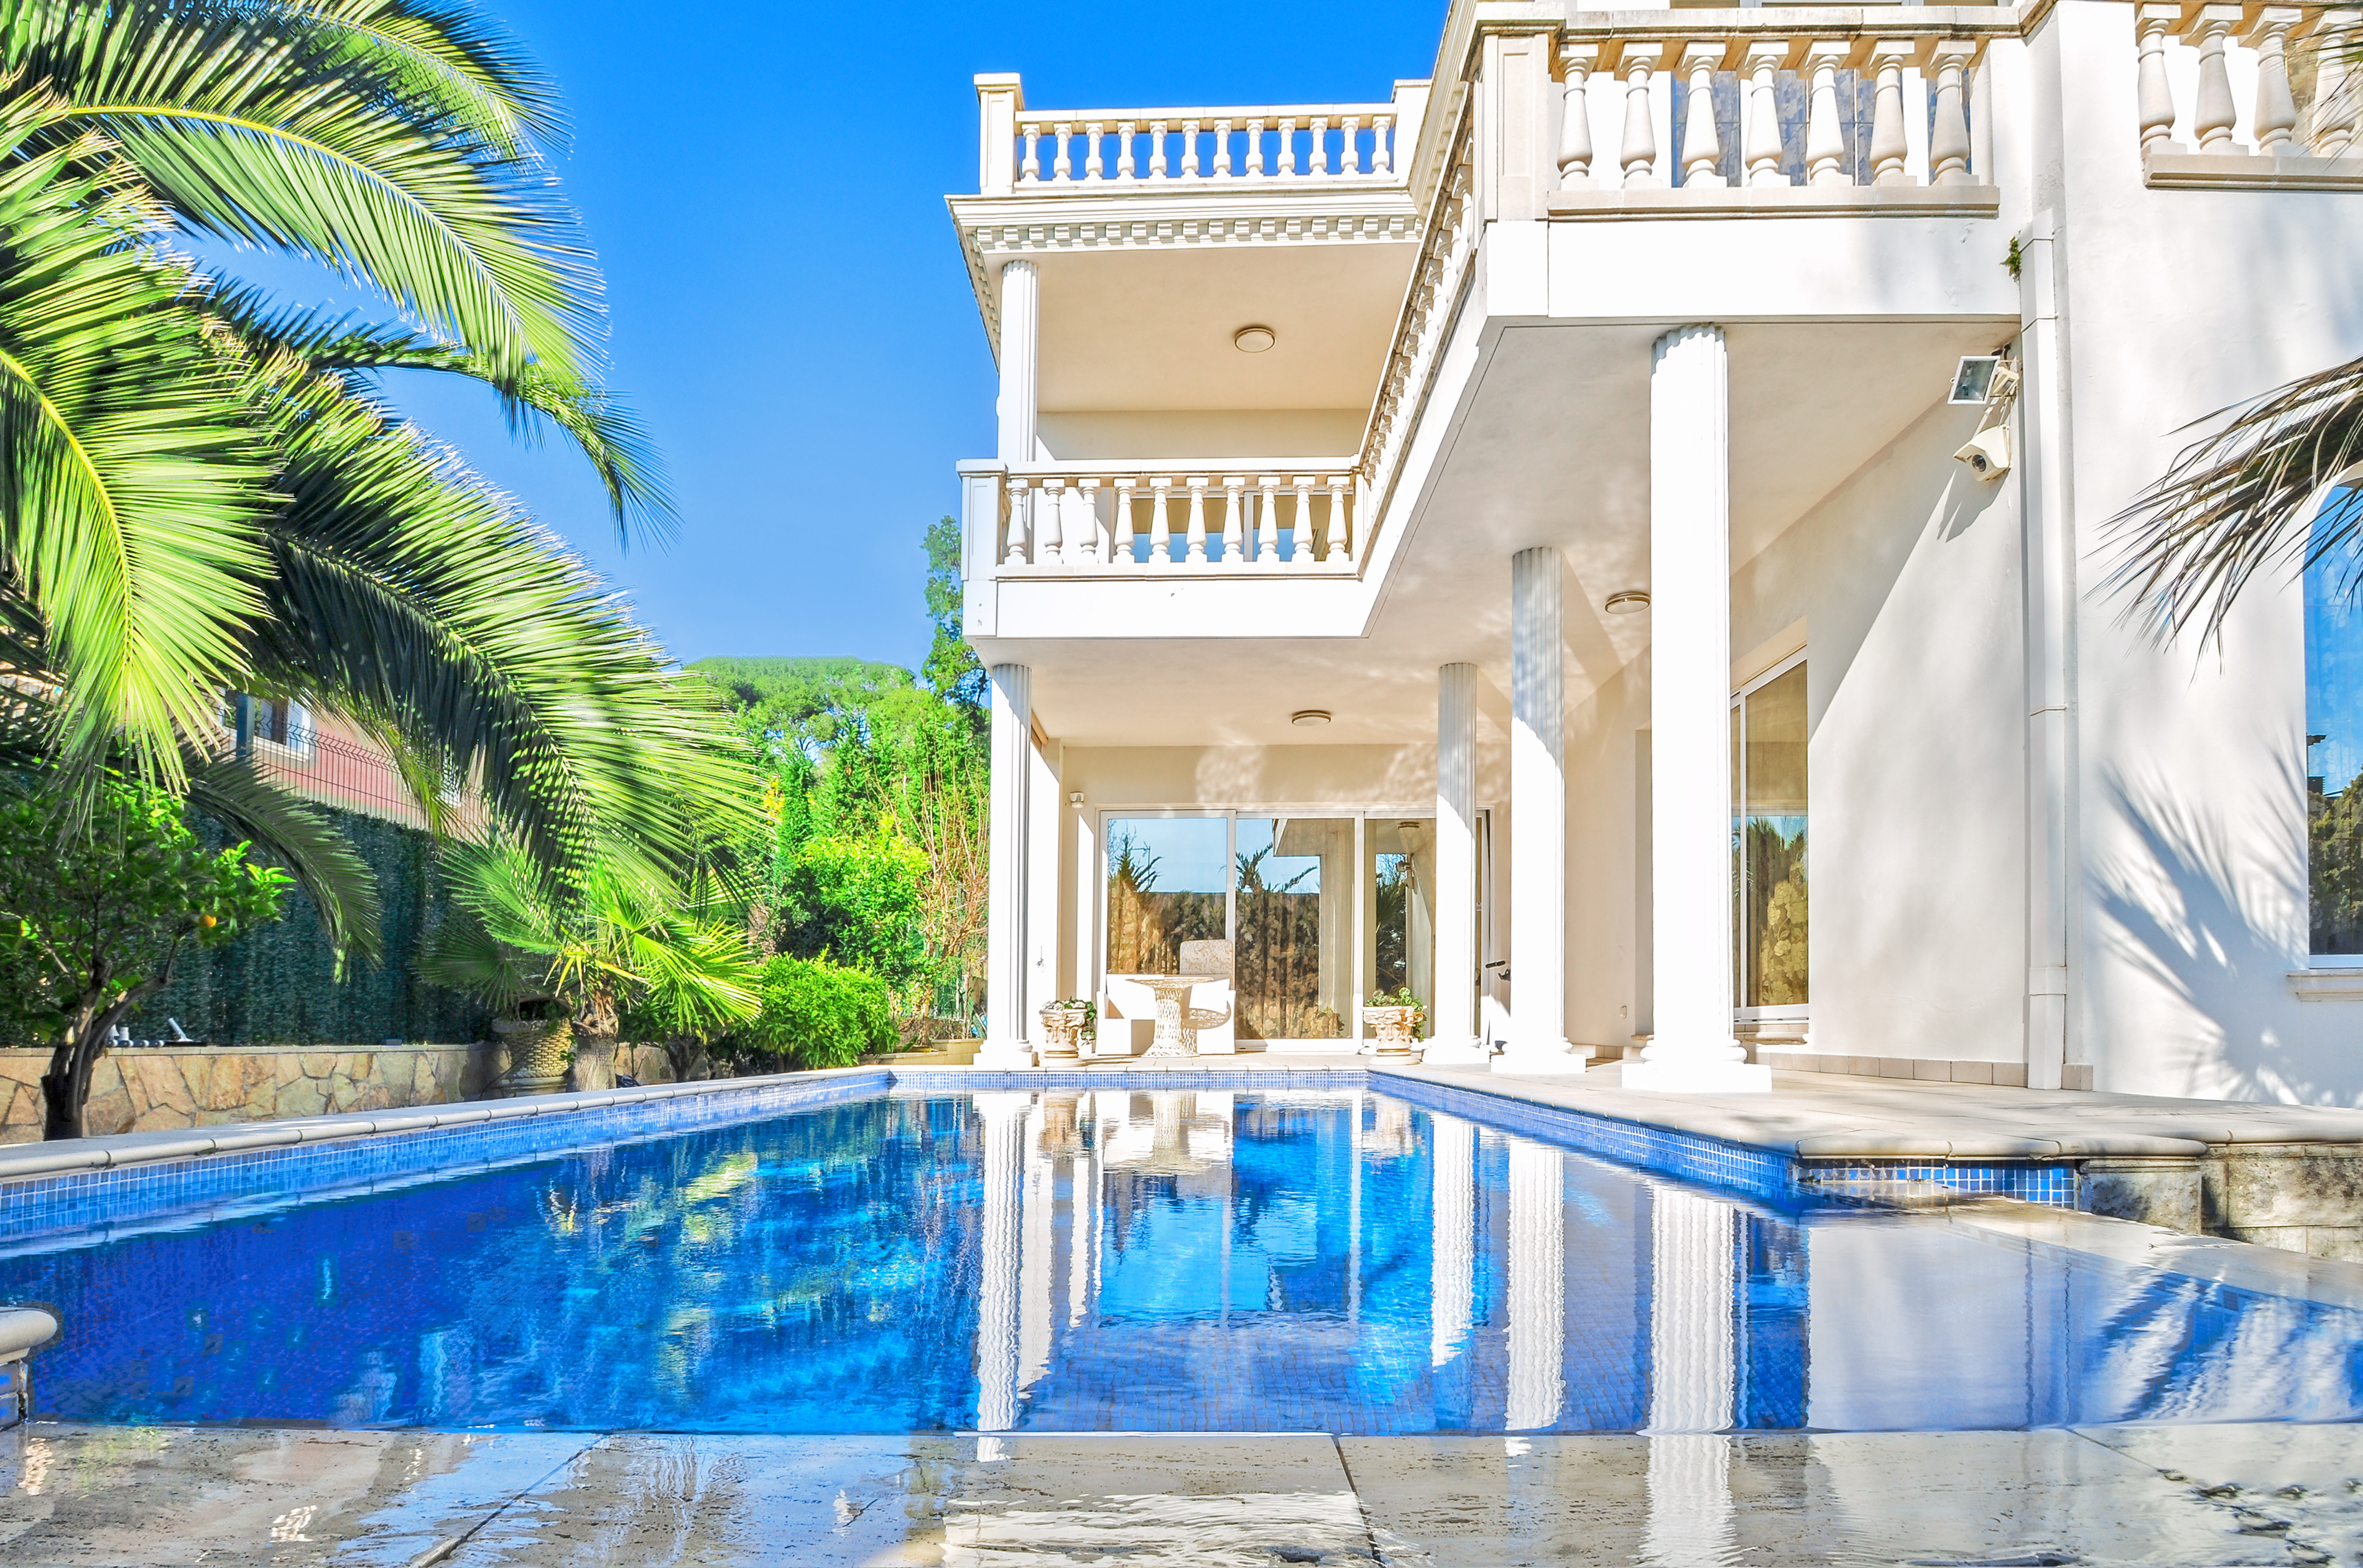 Luxury white house with swimming pool